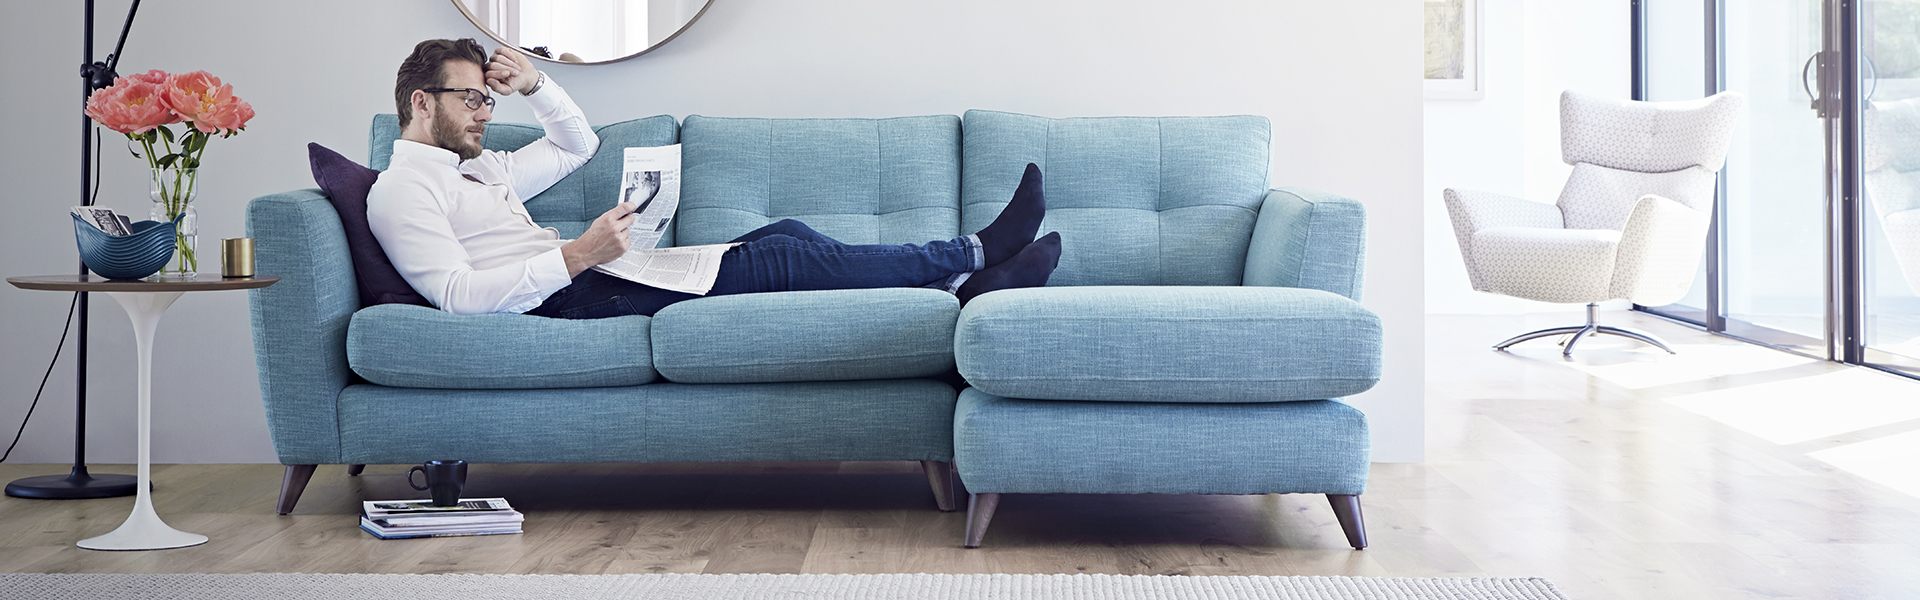 Find your perfect sofa